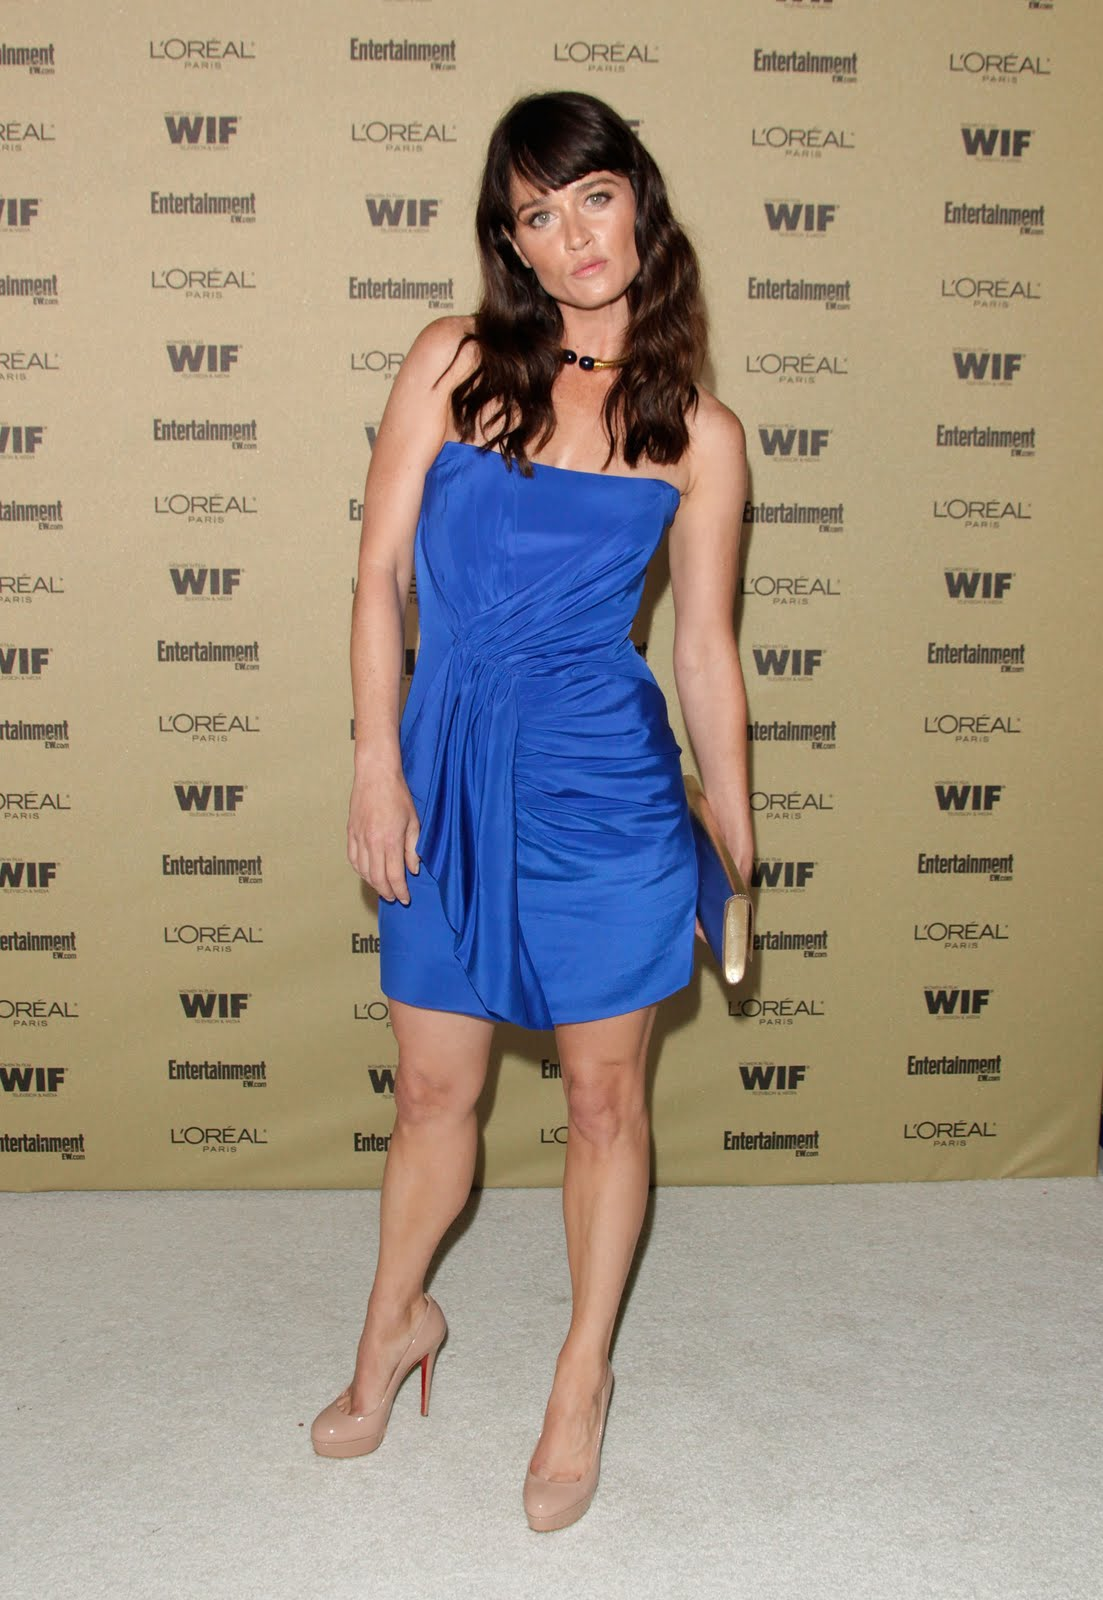 Robin Tunney Women In Film Pre Emmy Party 006 122 124lo This is what you get when you add together 5 nights of inadequate sleep, ...